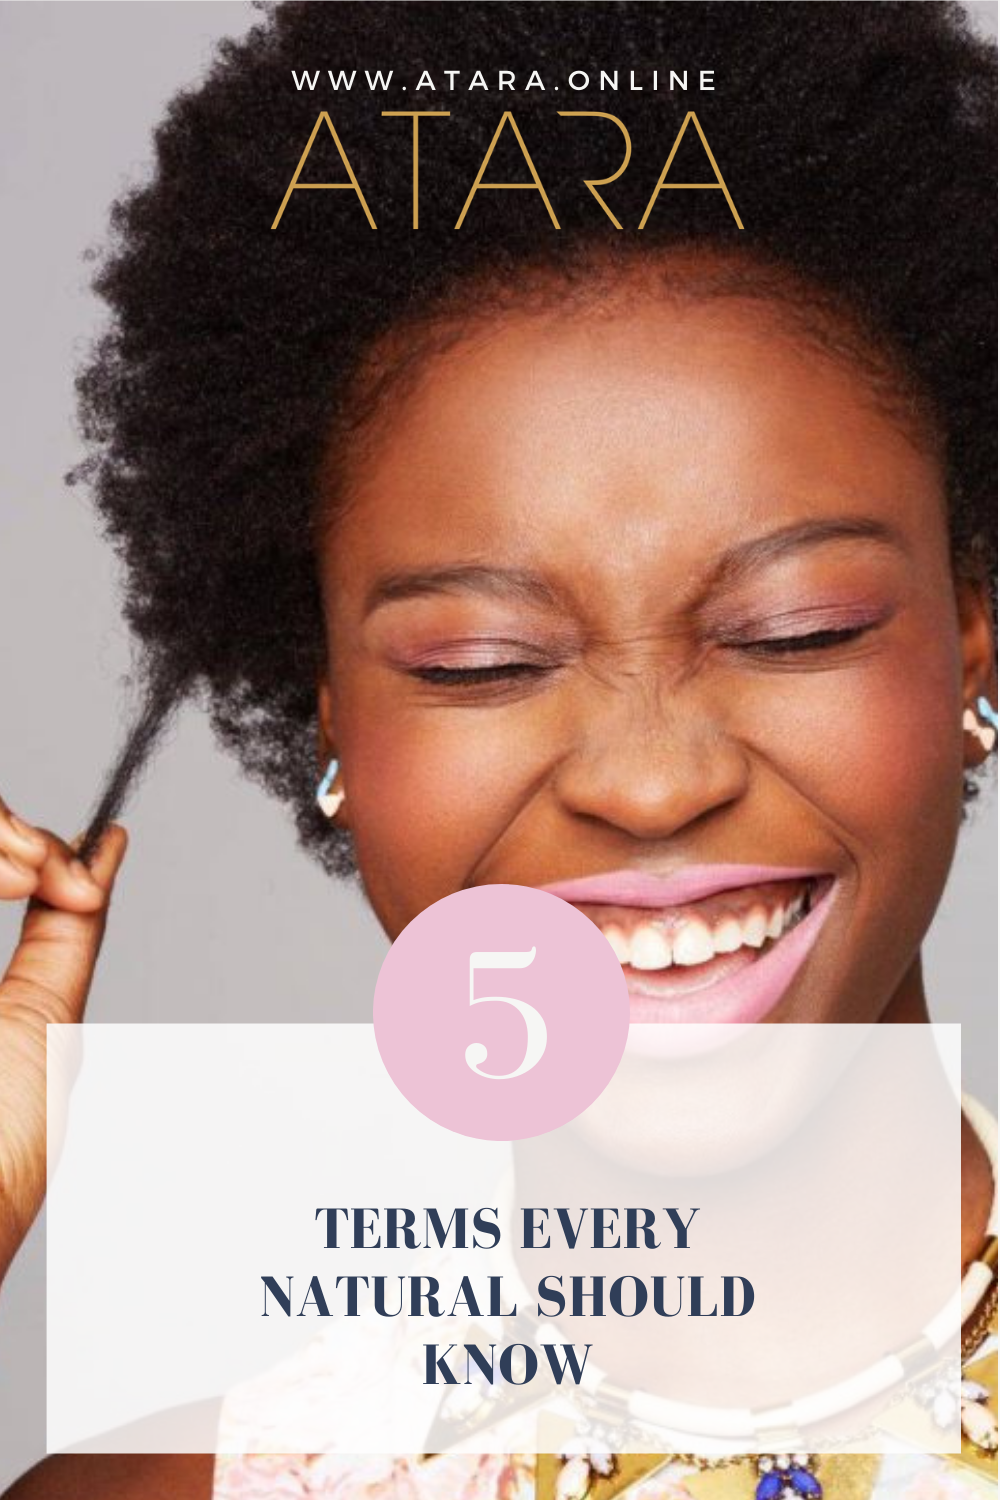 5 terms every natural should know (on their natural hair journey)